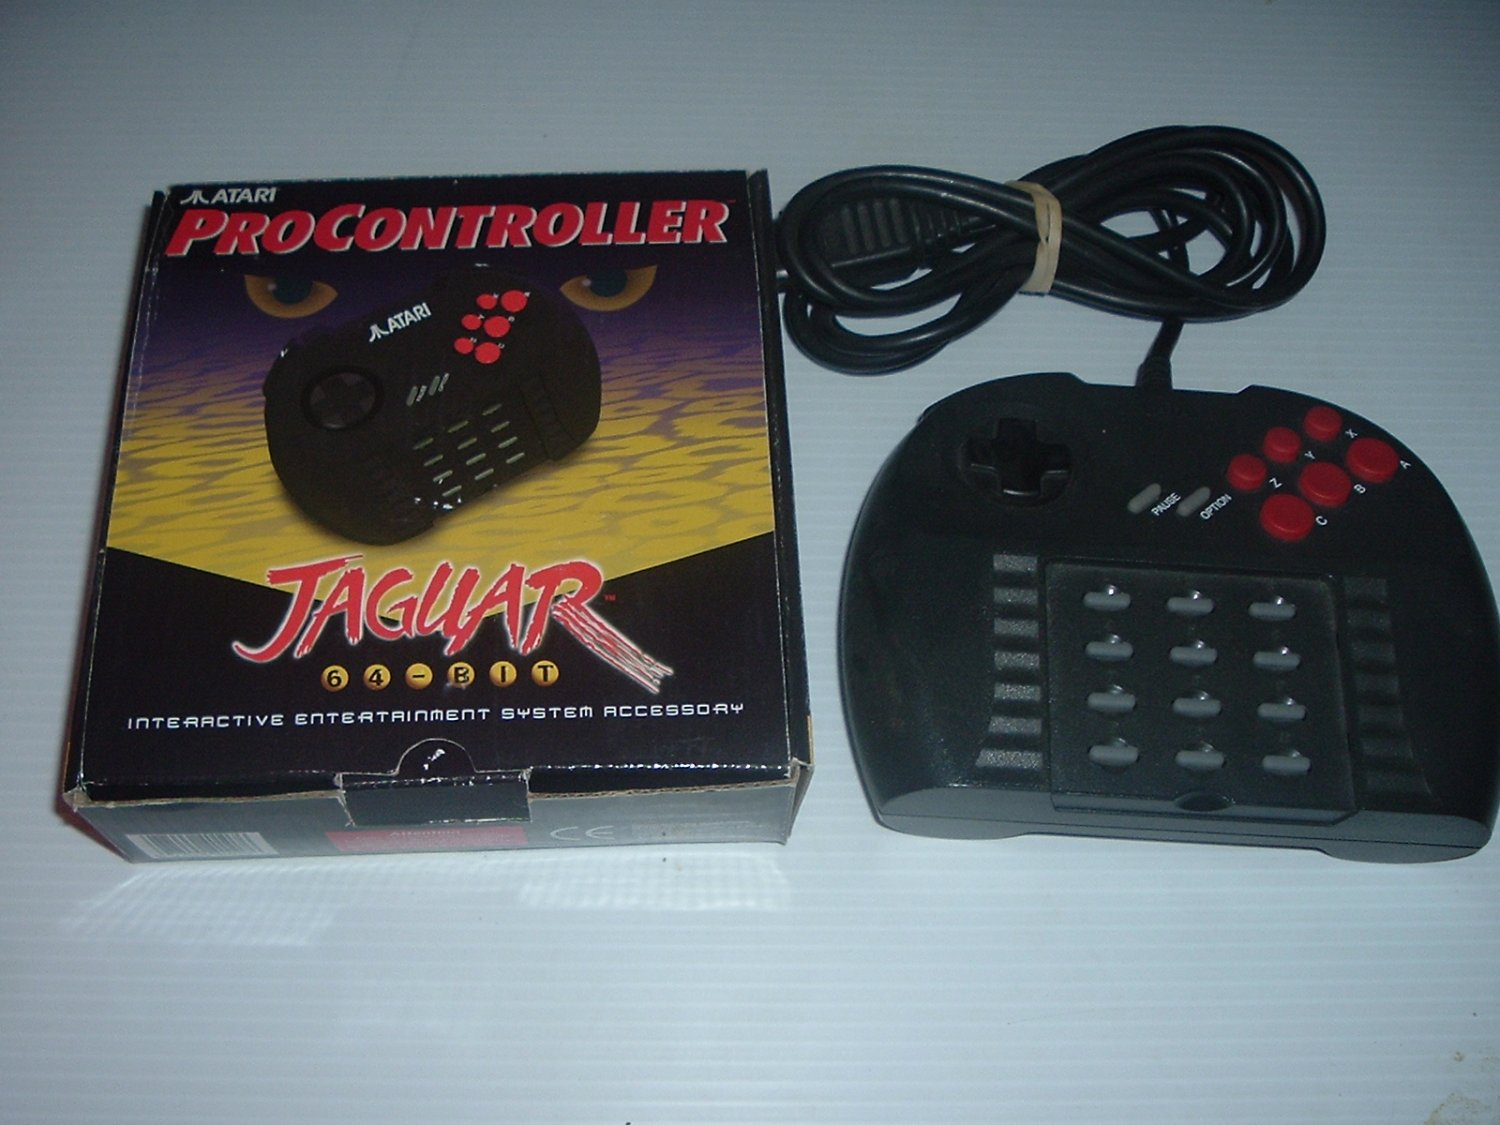 Atari Jaguar Pro Controller NEAR MINT IN BOX, RARE 6-button pad with L1 and R1 buttons, For Sale